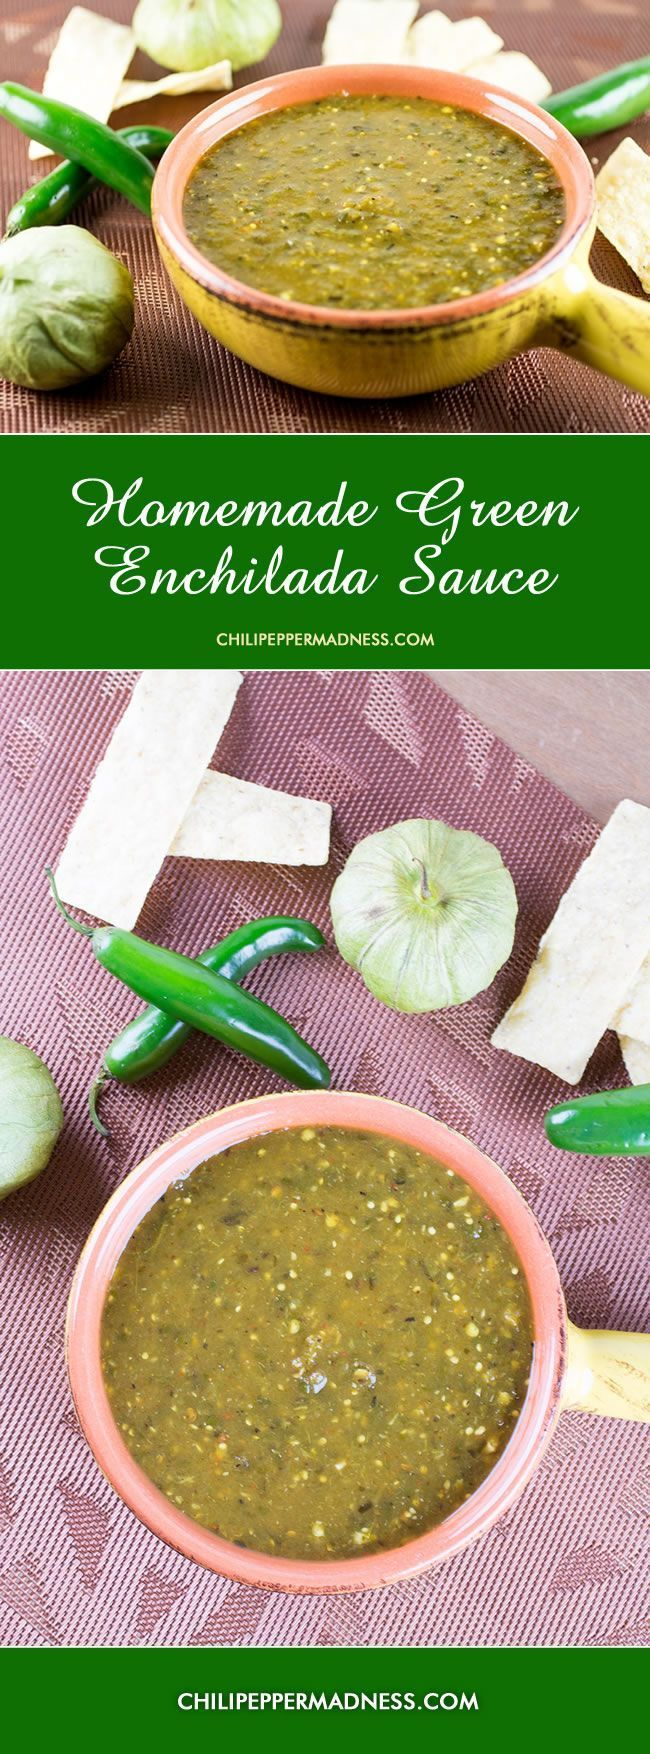 Homemade Green Enchilada Sauce with Roasted Tomatillos from ChiliPepperMadness.com